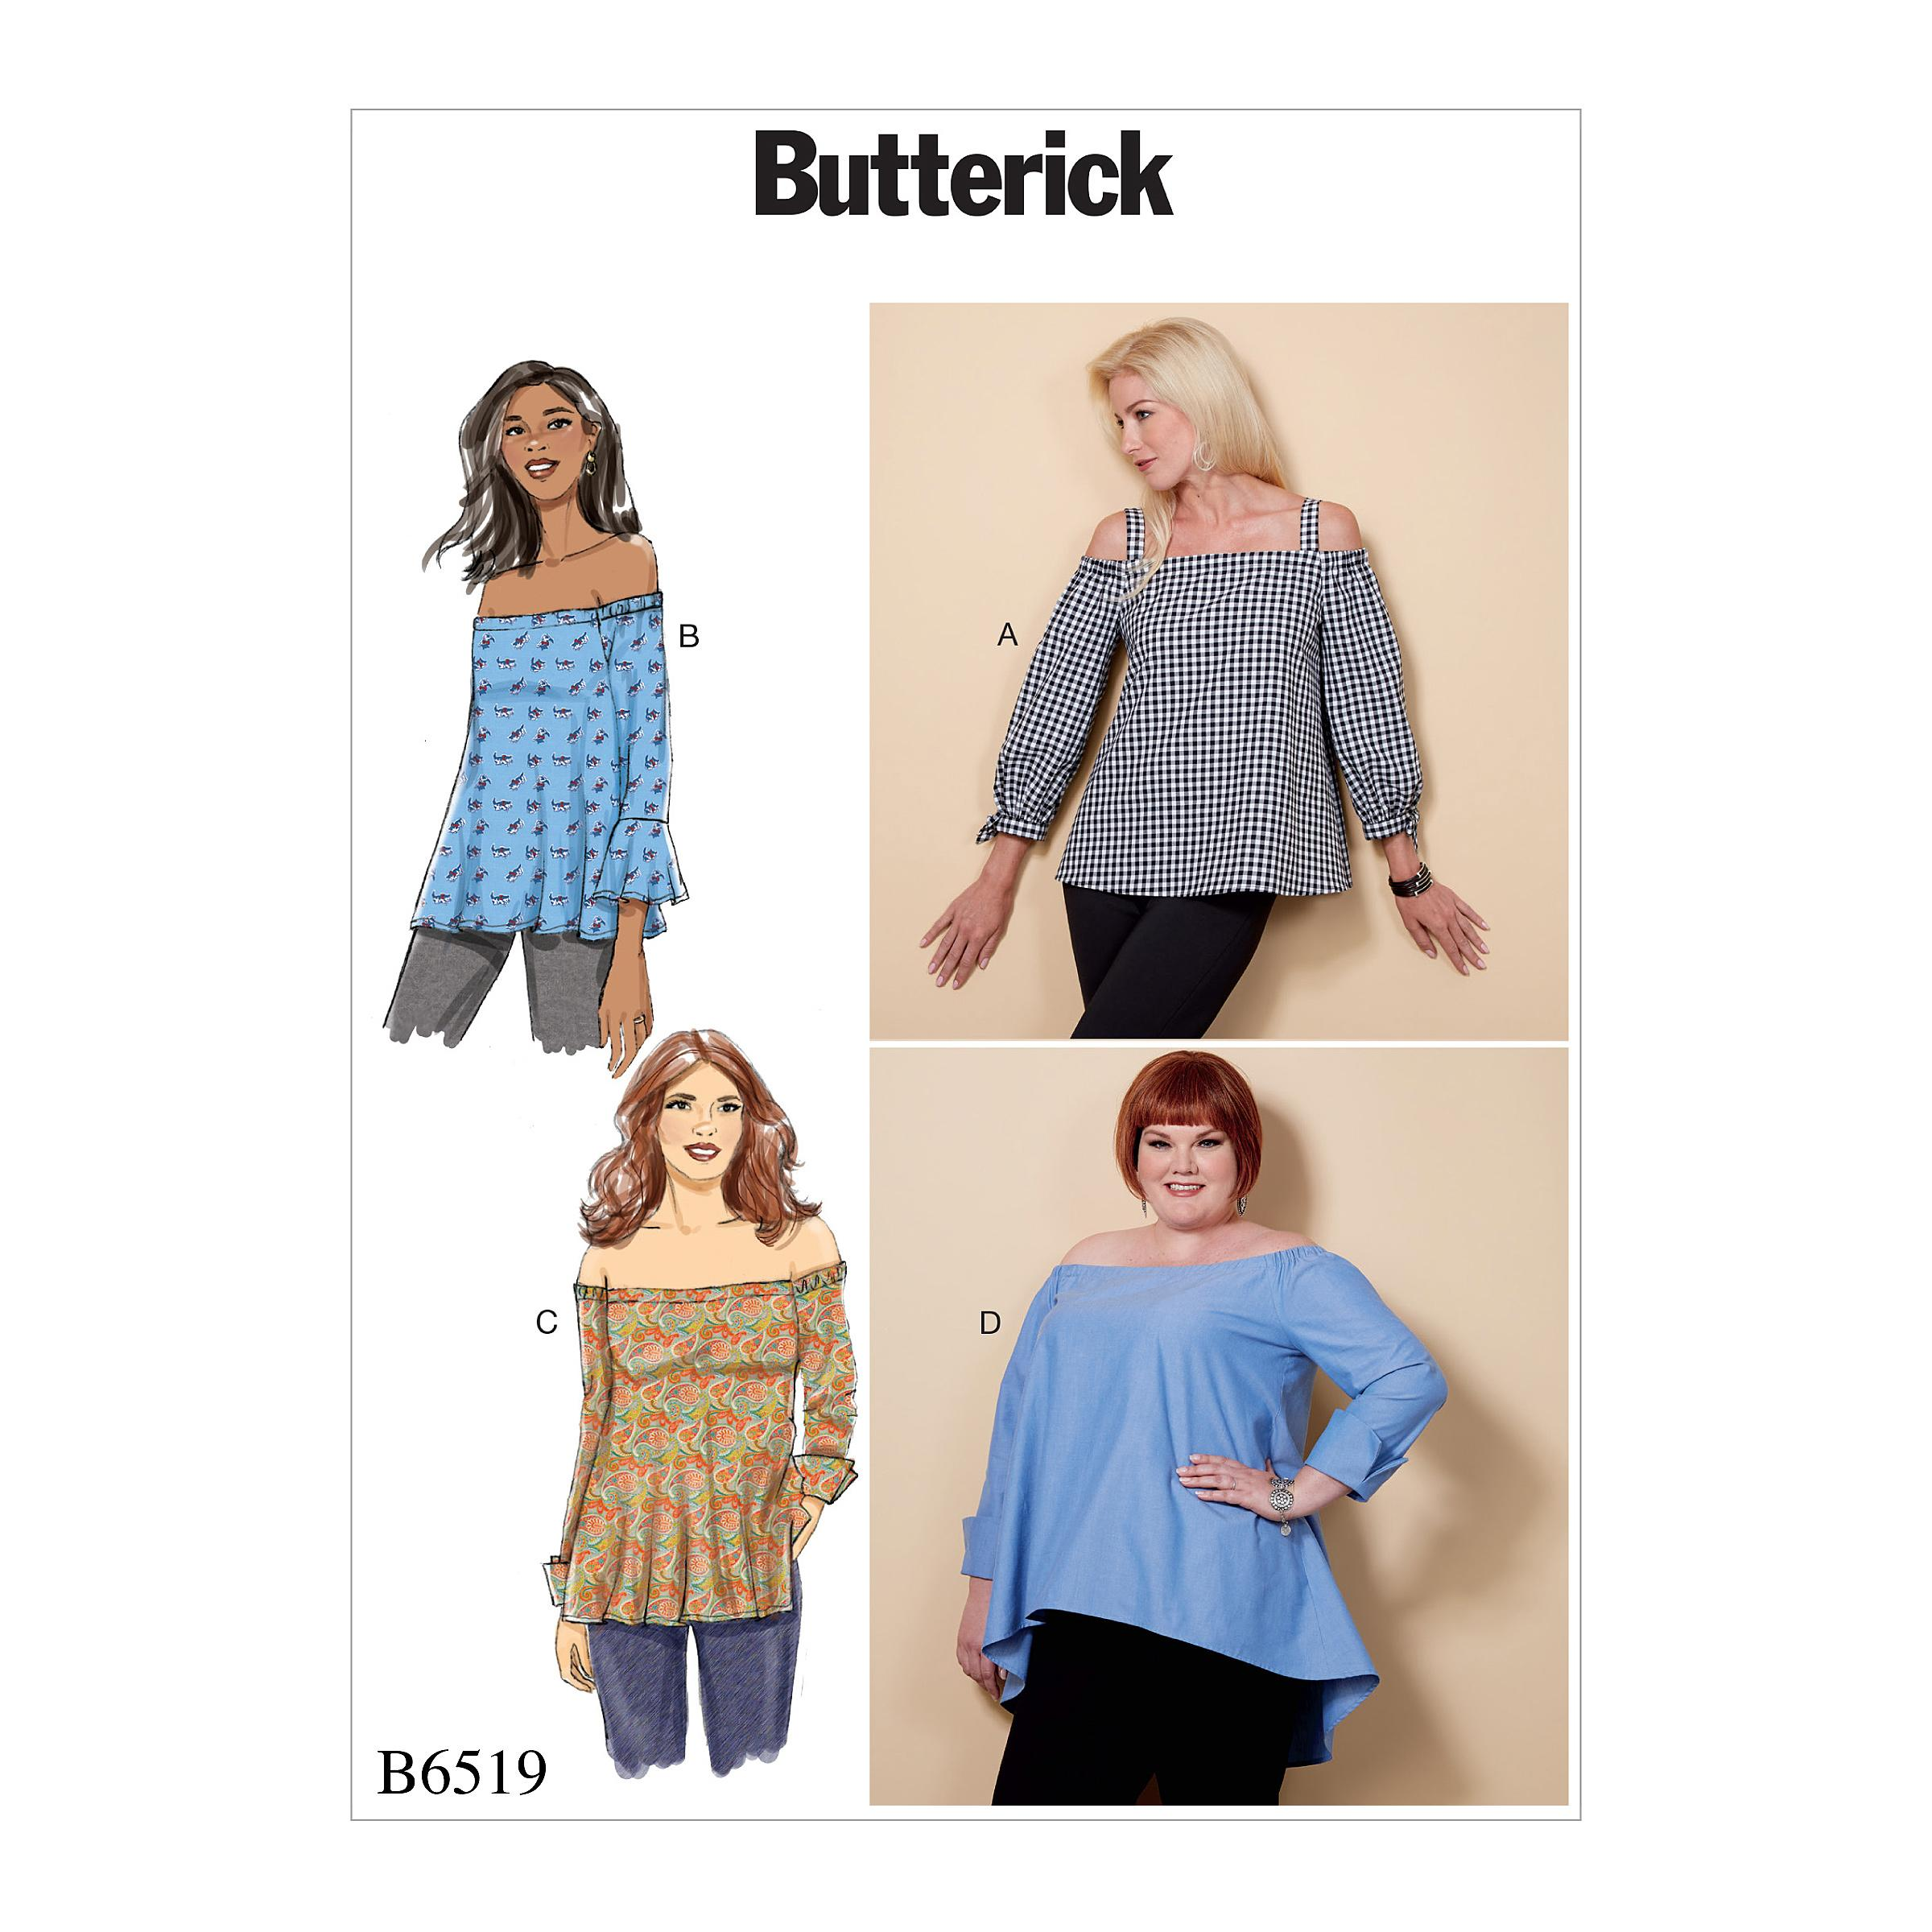 Butterick B6519 Misses' Off-the-Shoulder Top